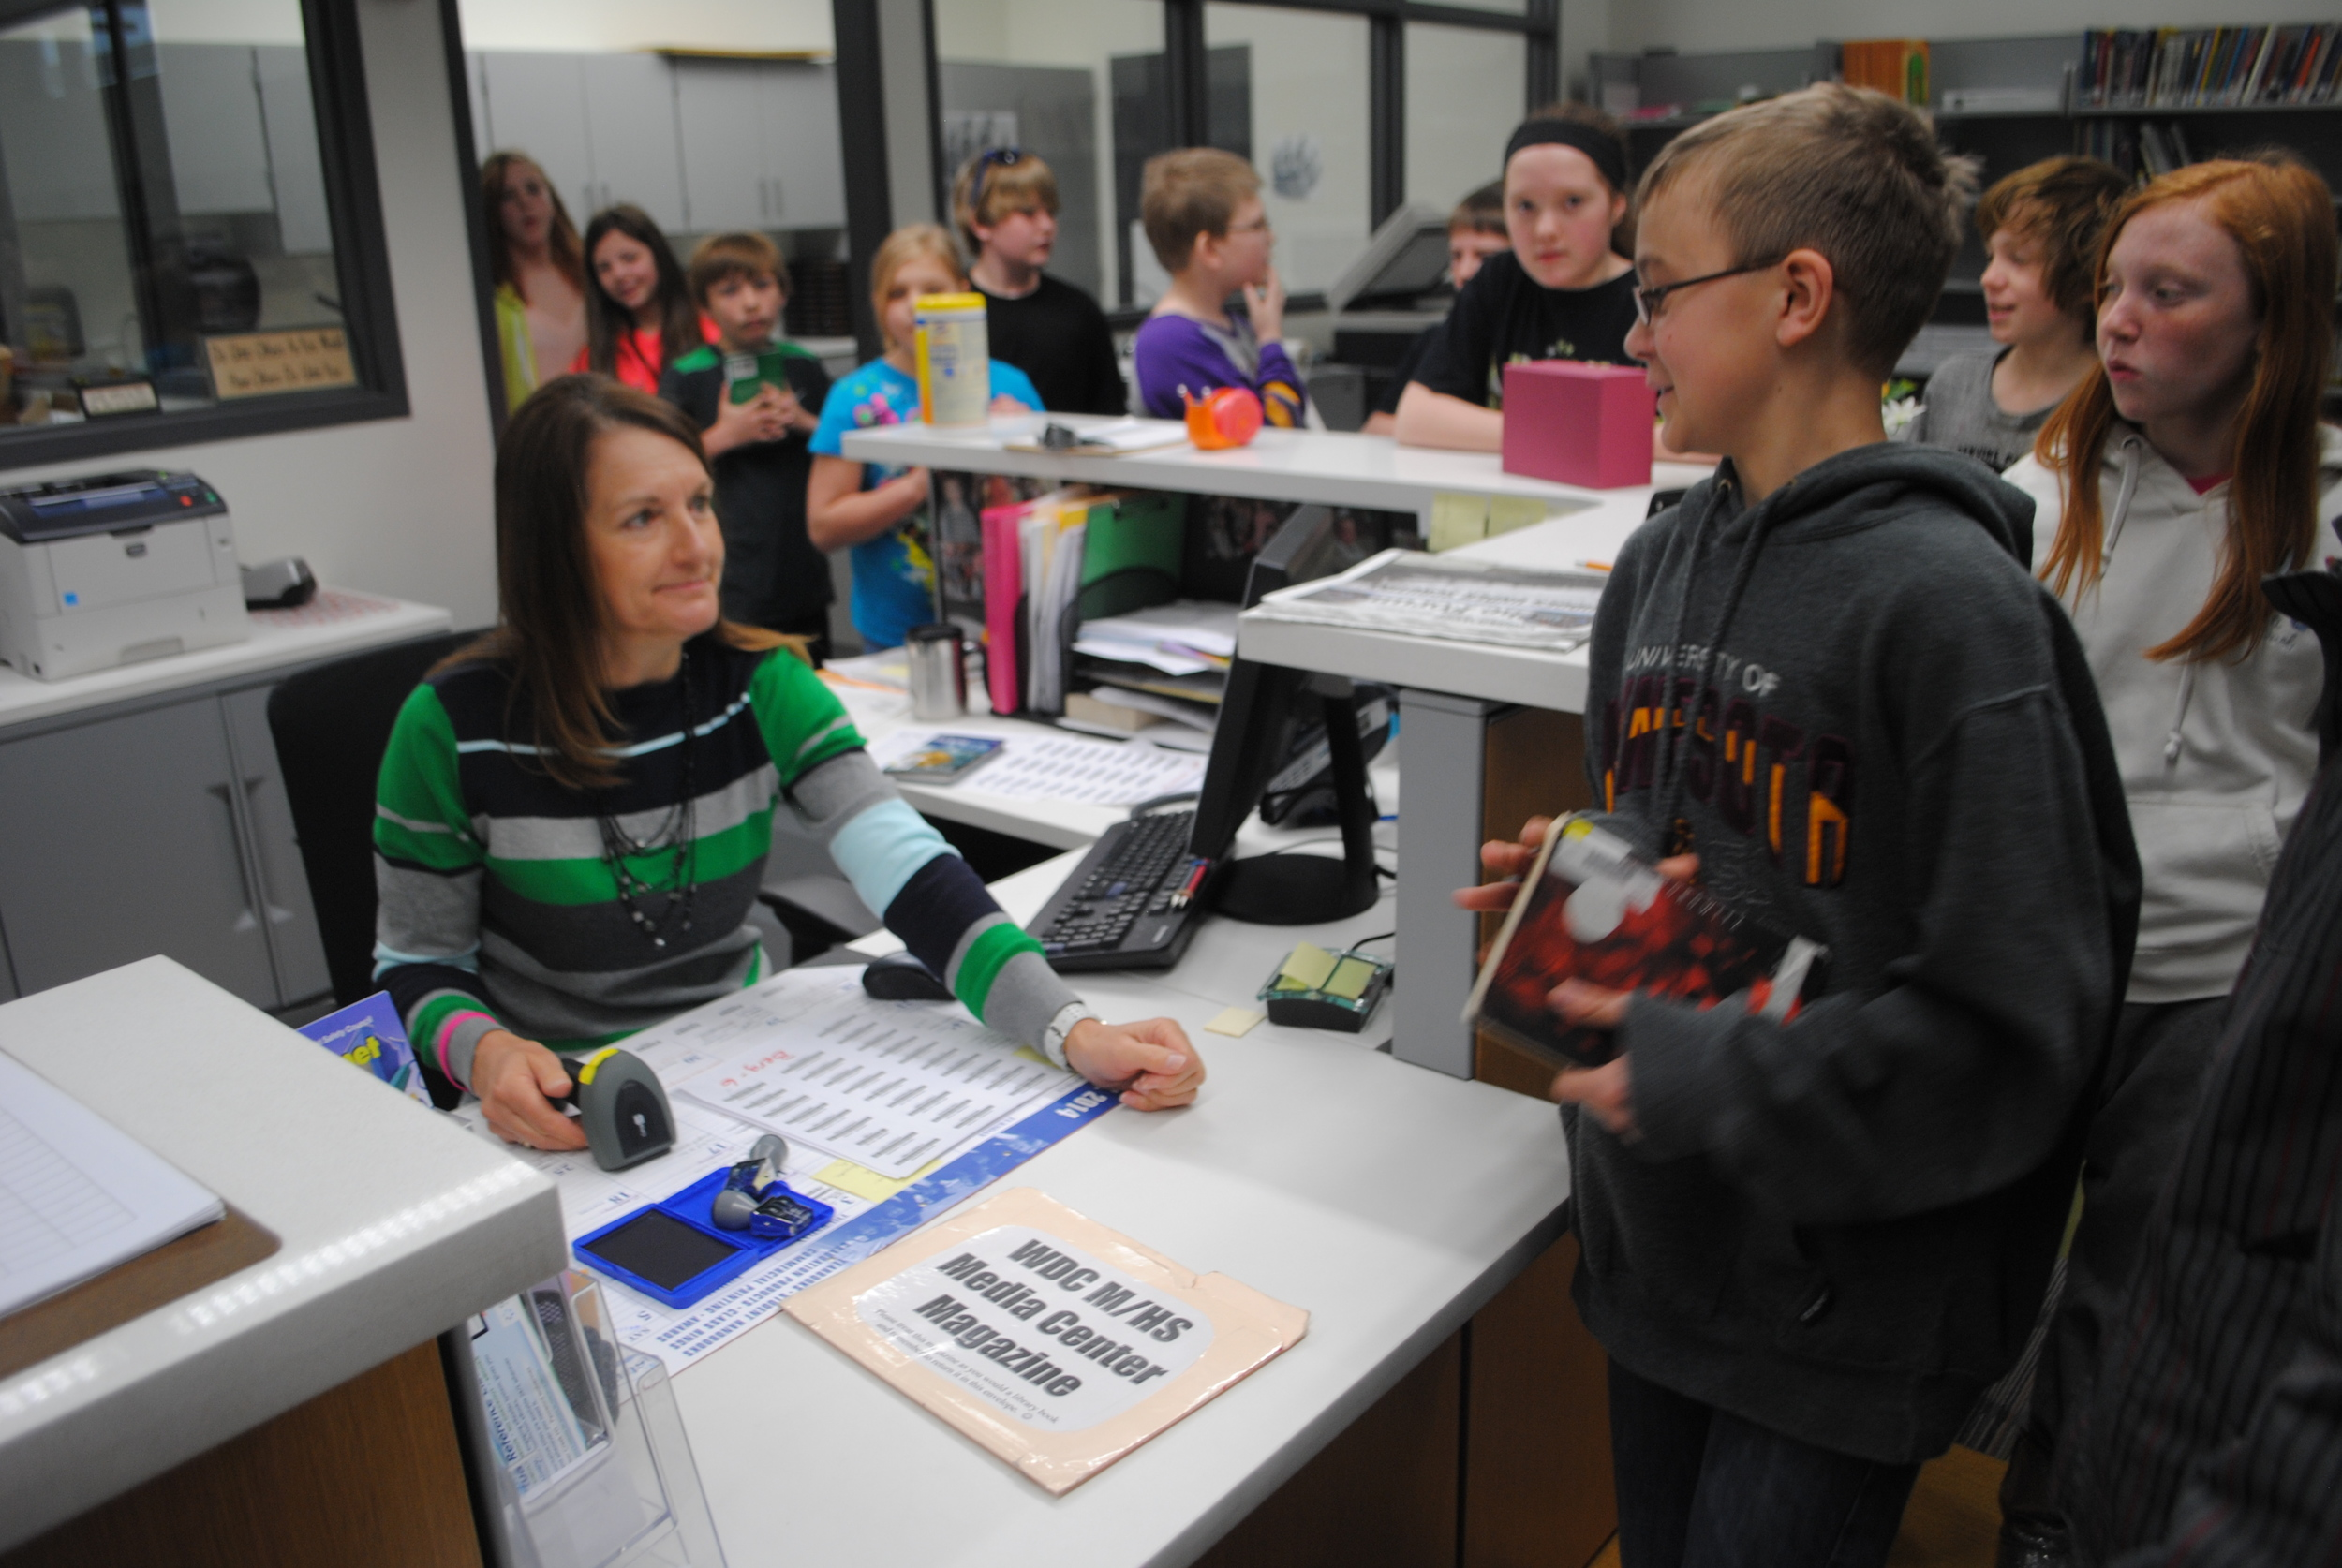 Media Center assistant Kathie Davis takes care of a long line of sixth-grade students from Mrs. Berg's class on Tuesday. Mrs. Davis takes time to chat with students as they return or check out books.